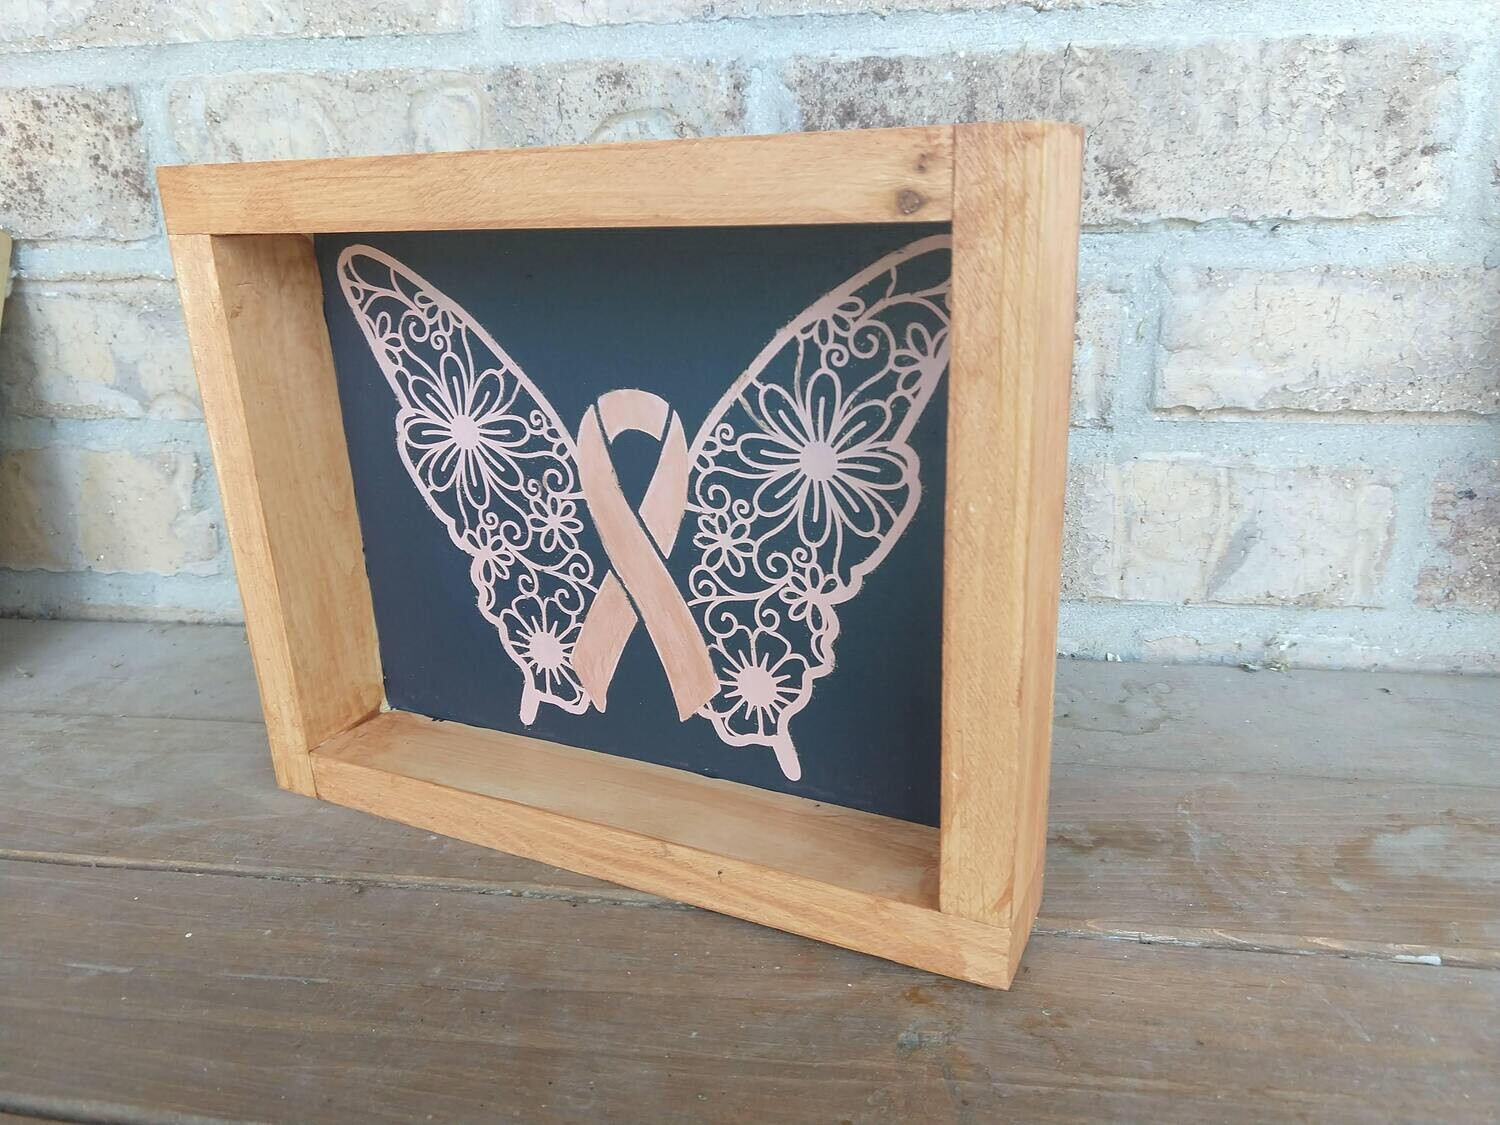 Wooden framed  picture, hand painted